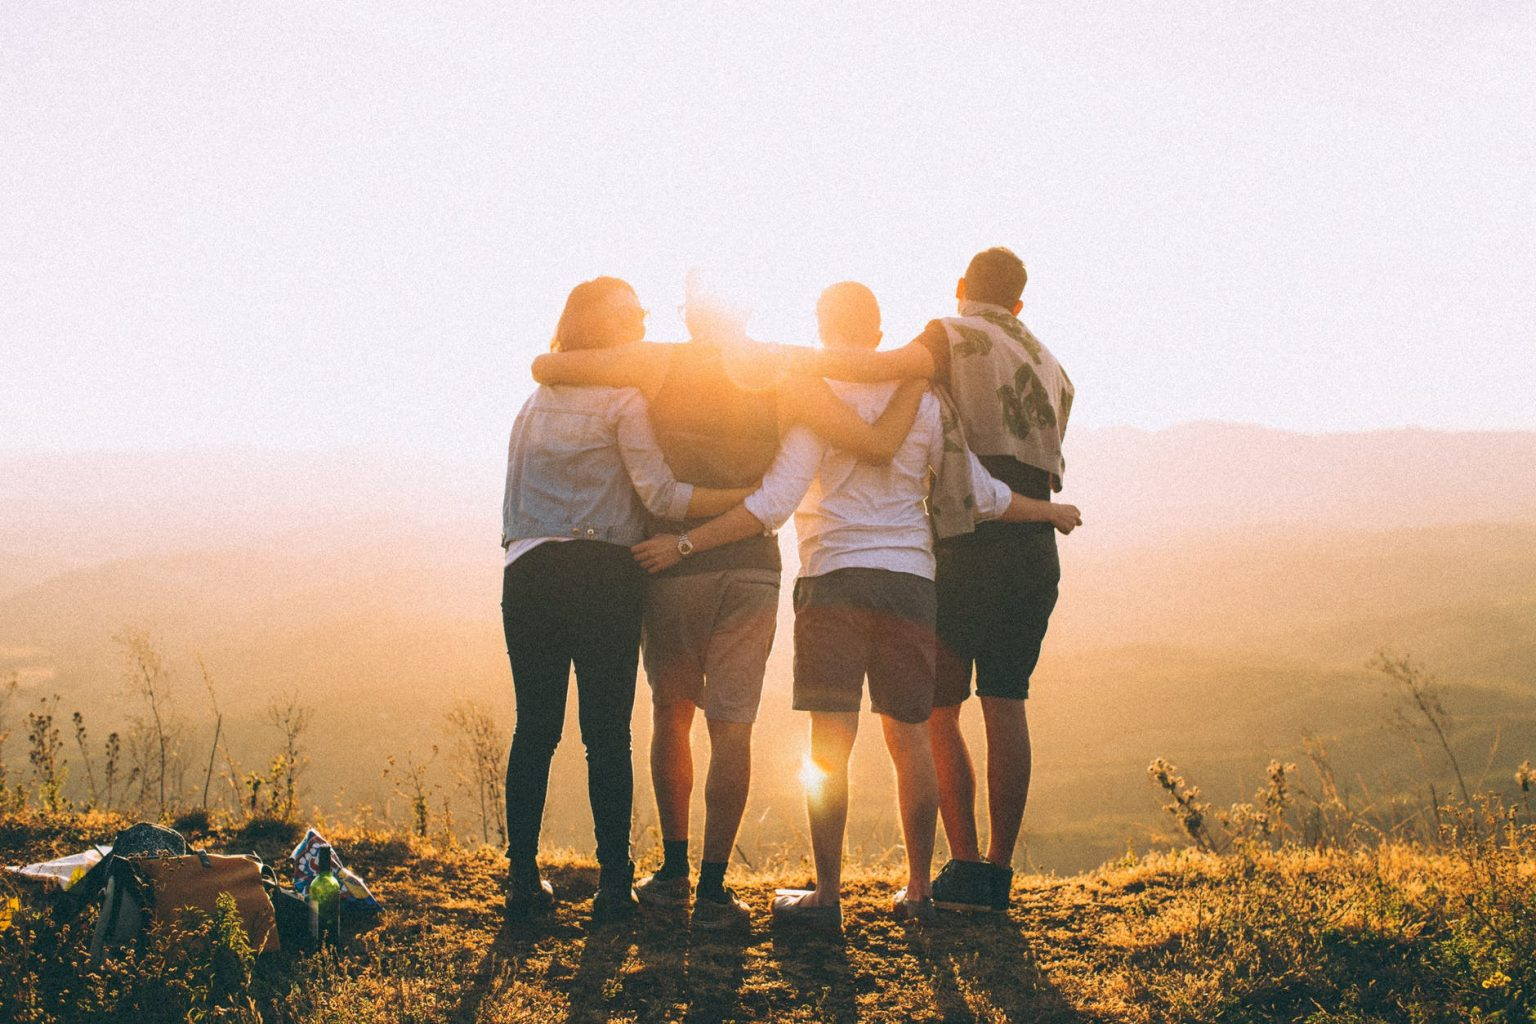 Group of people looking at sunset